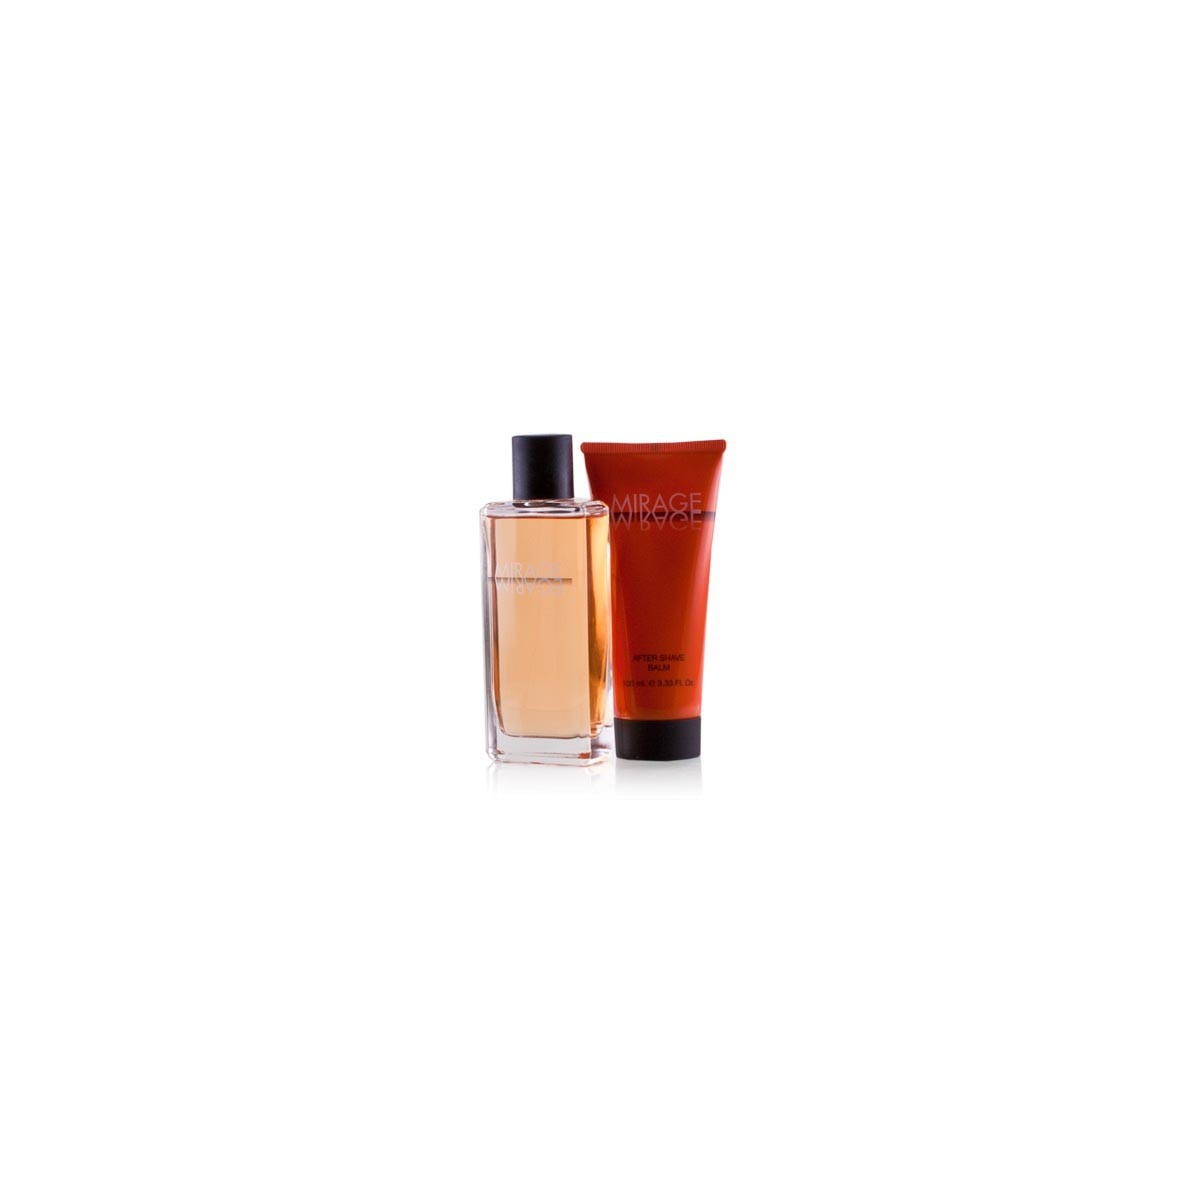 Consumo Mirage Men Eau De Toilette 100 ml Body Milk 200 ml